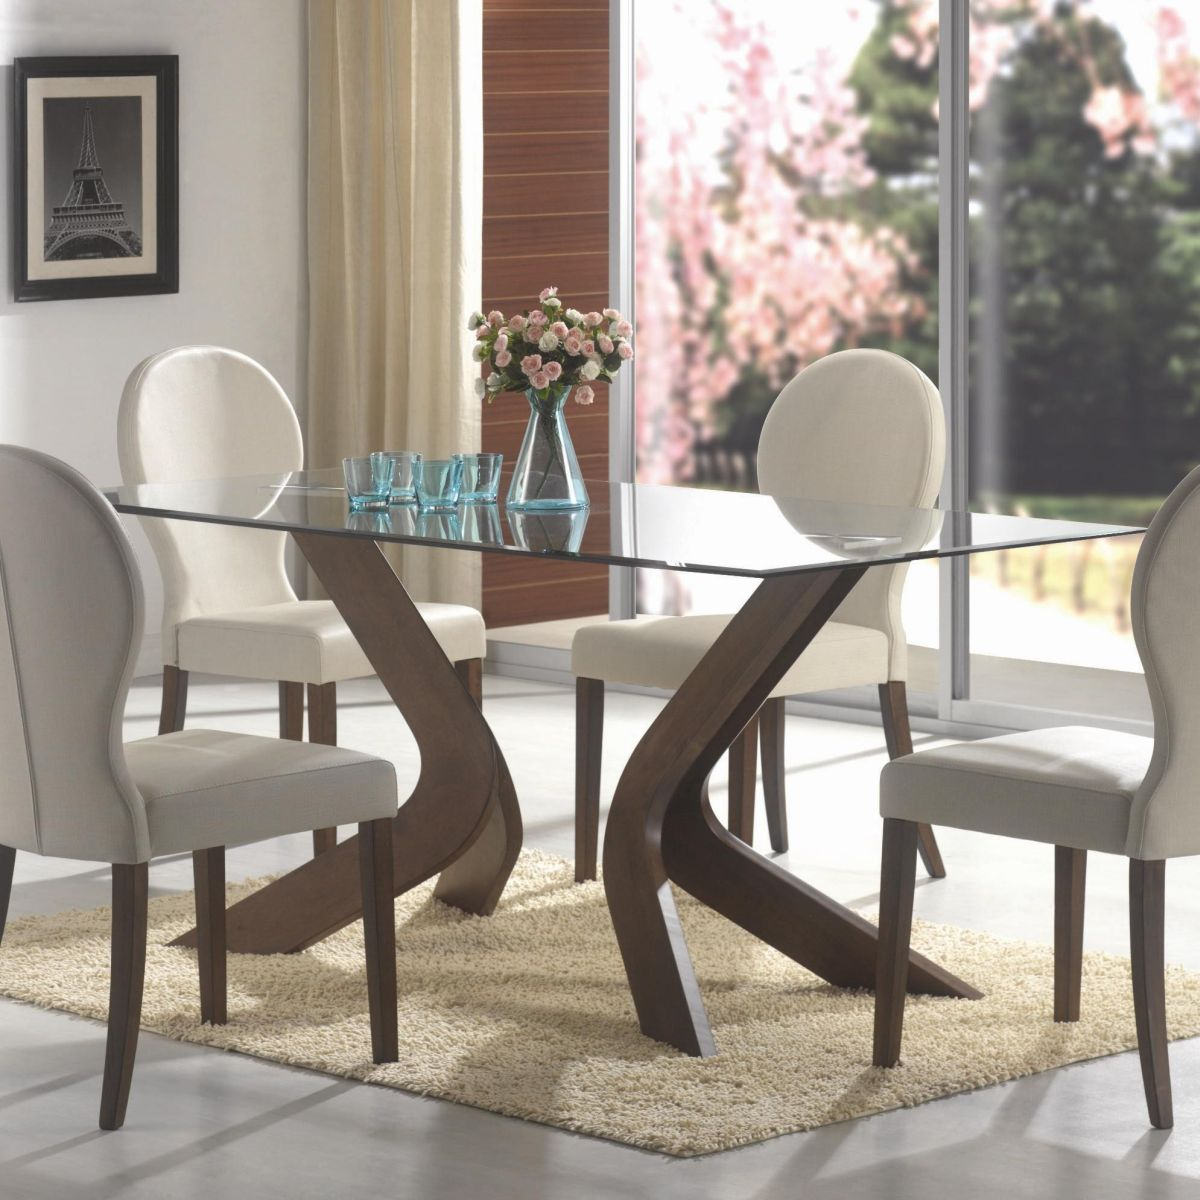 Breakfast Room Tables 40 Glass Dining Room Tables To Revamp With From Rectangle To Square